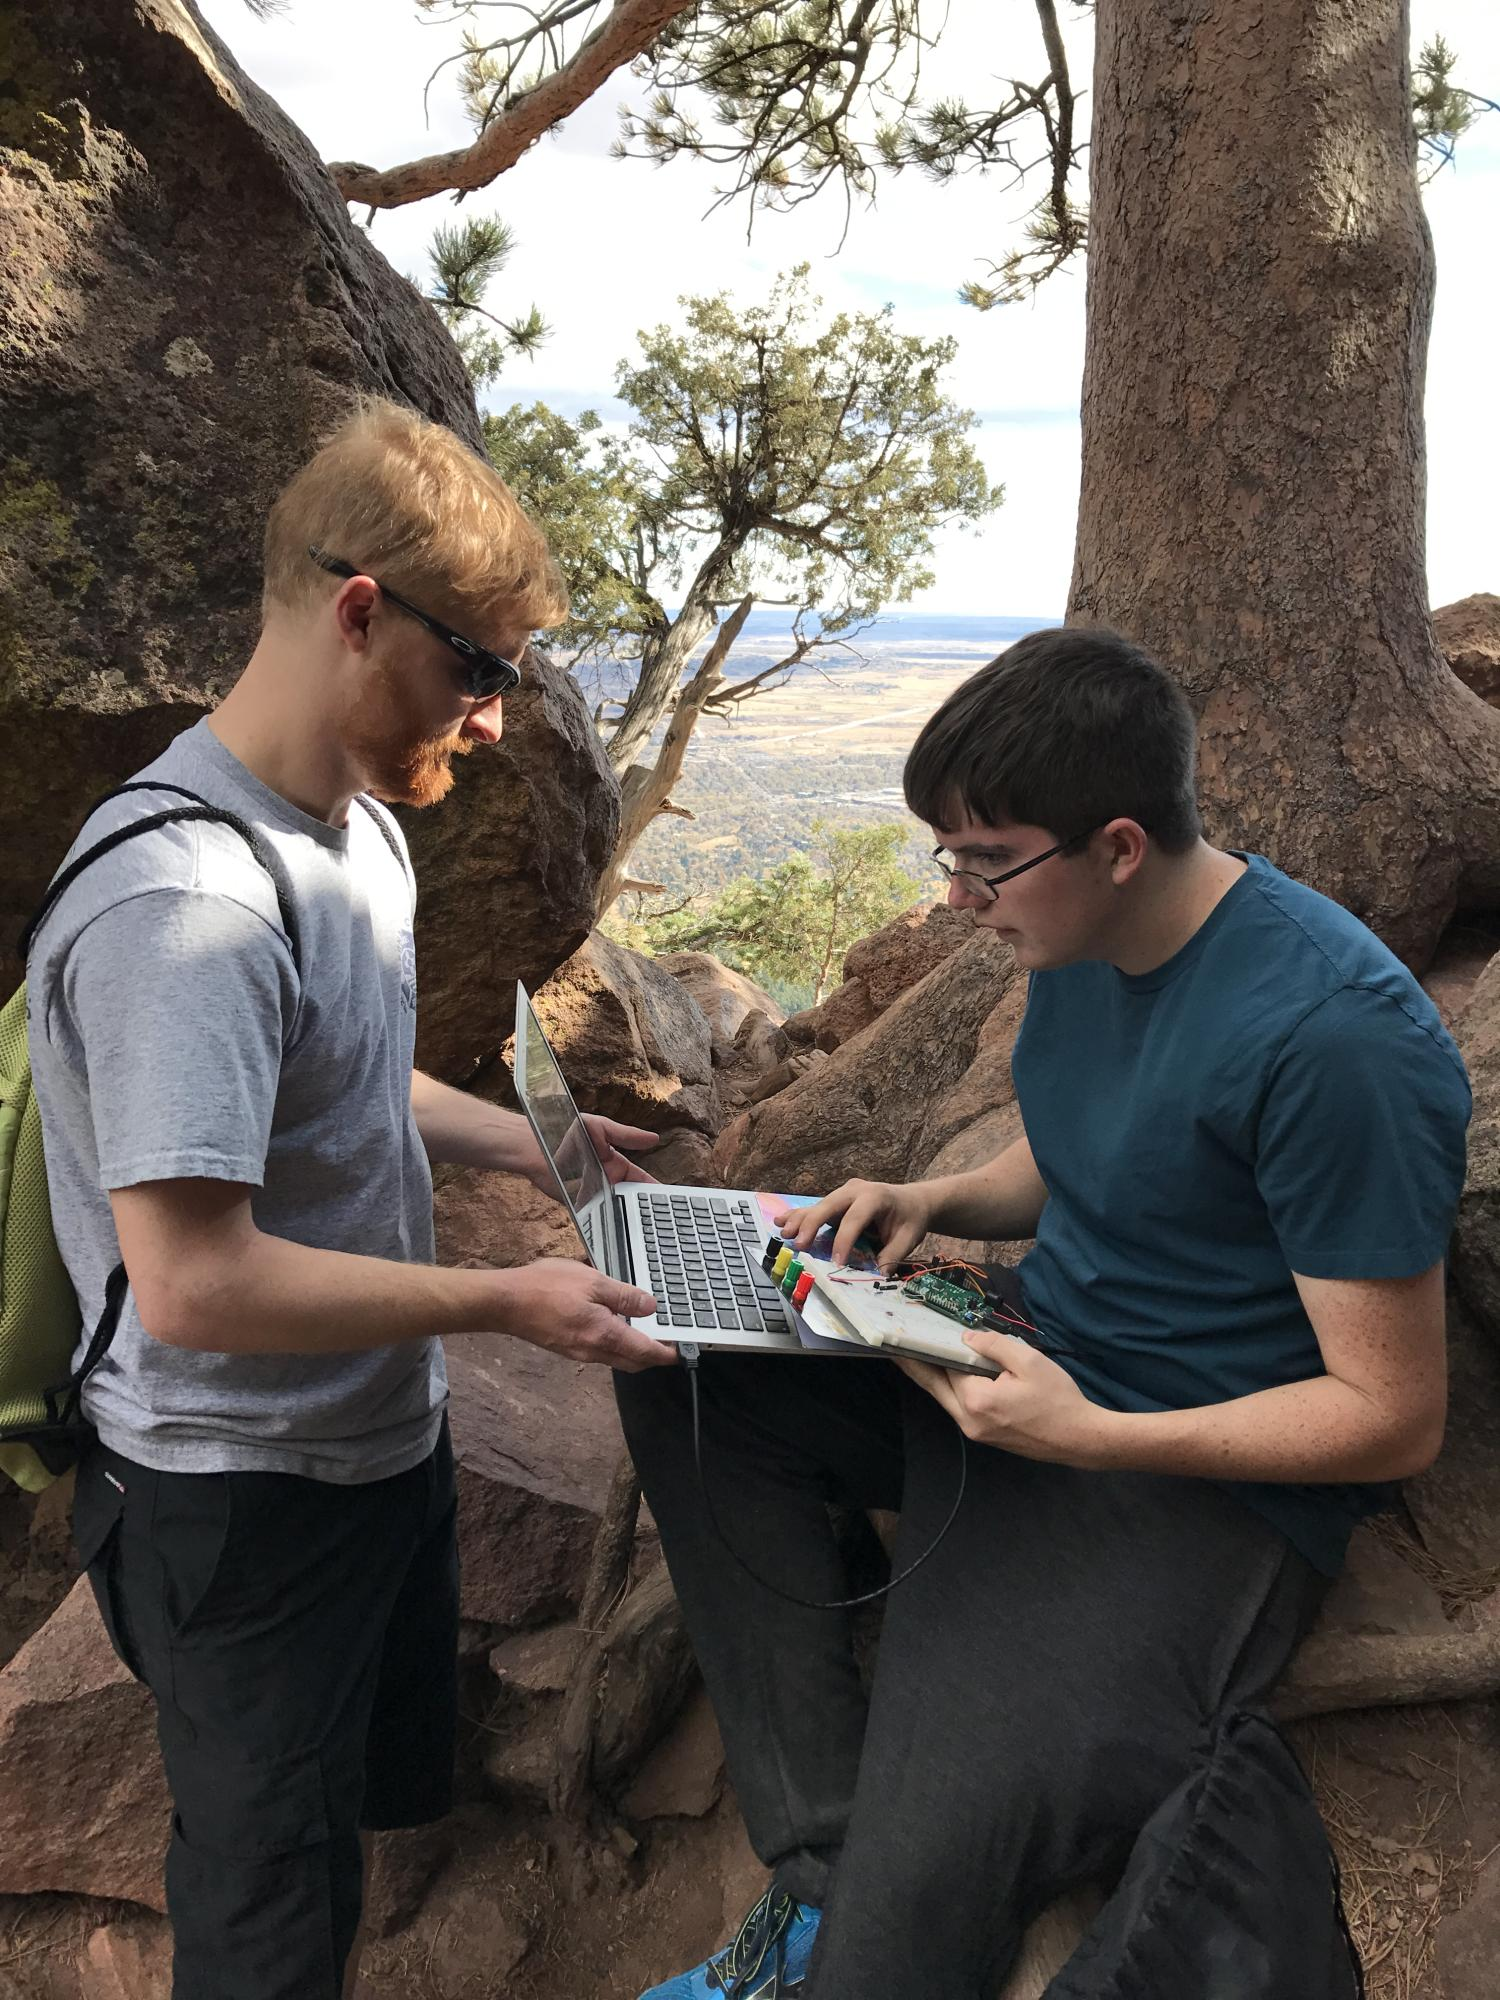 Students Take A Hike To Test Electronics Projects In The Real World Electrical And Alex Fosdick Student Look Over Some Data On Laptop At Side Of